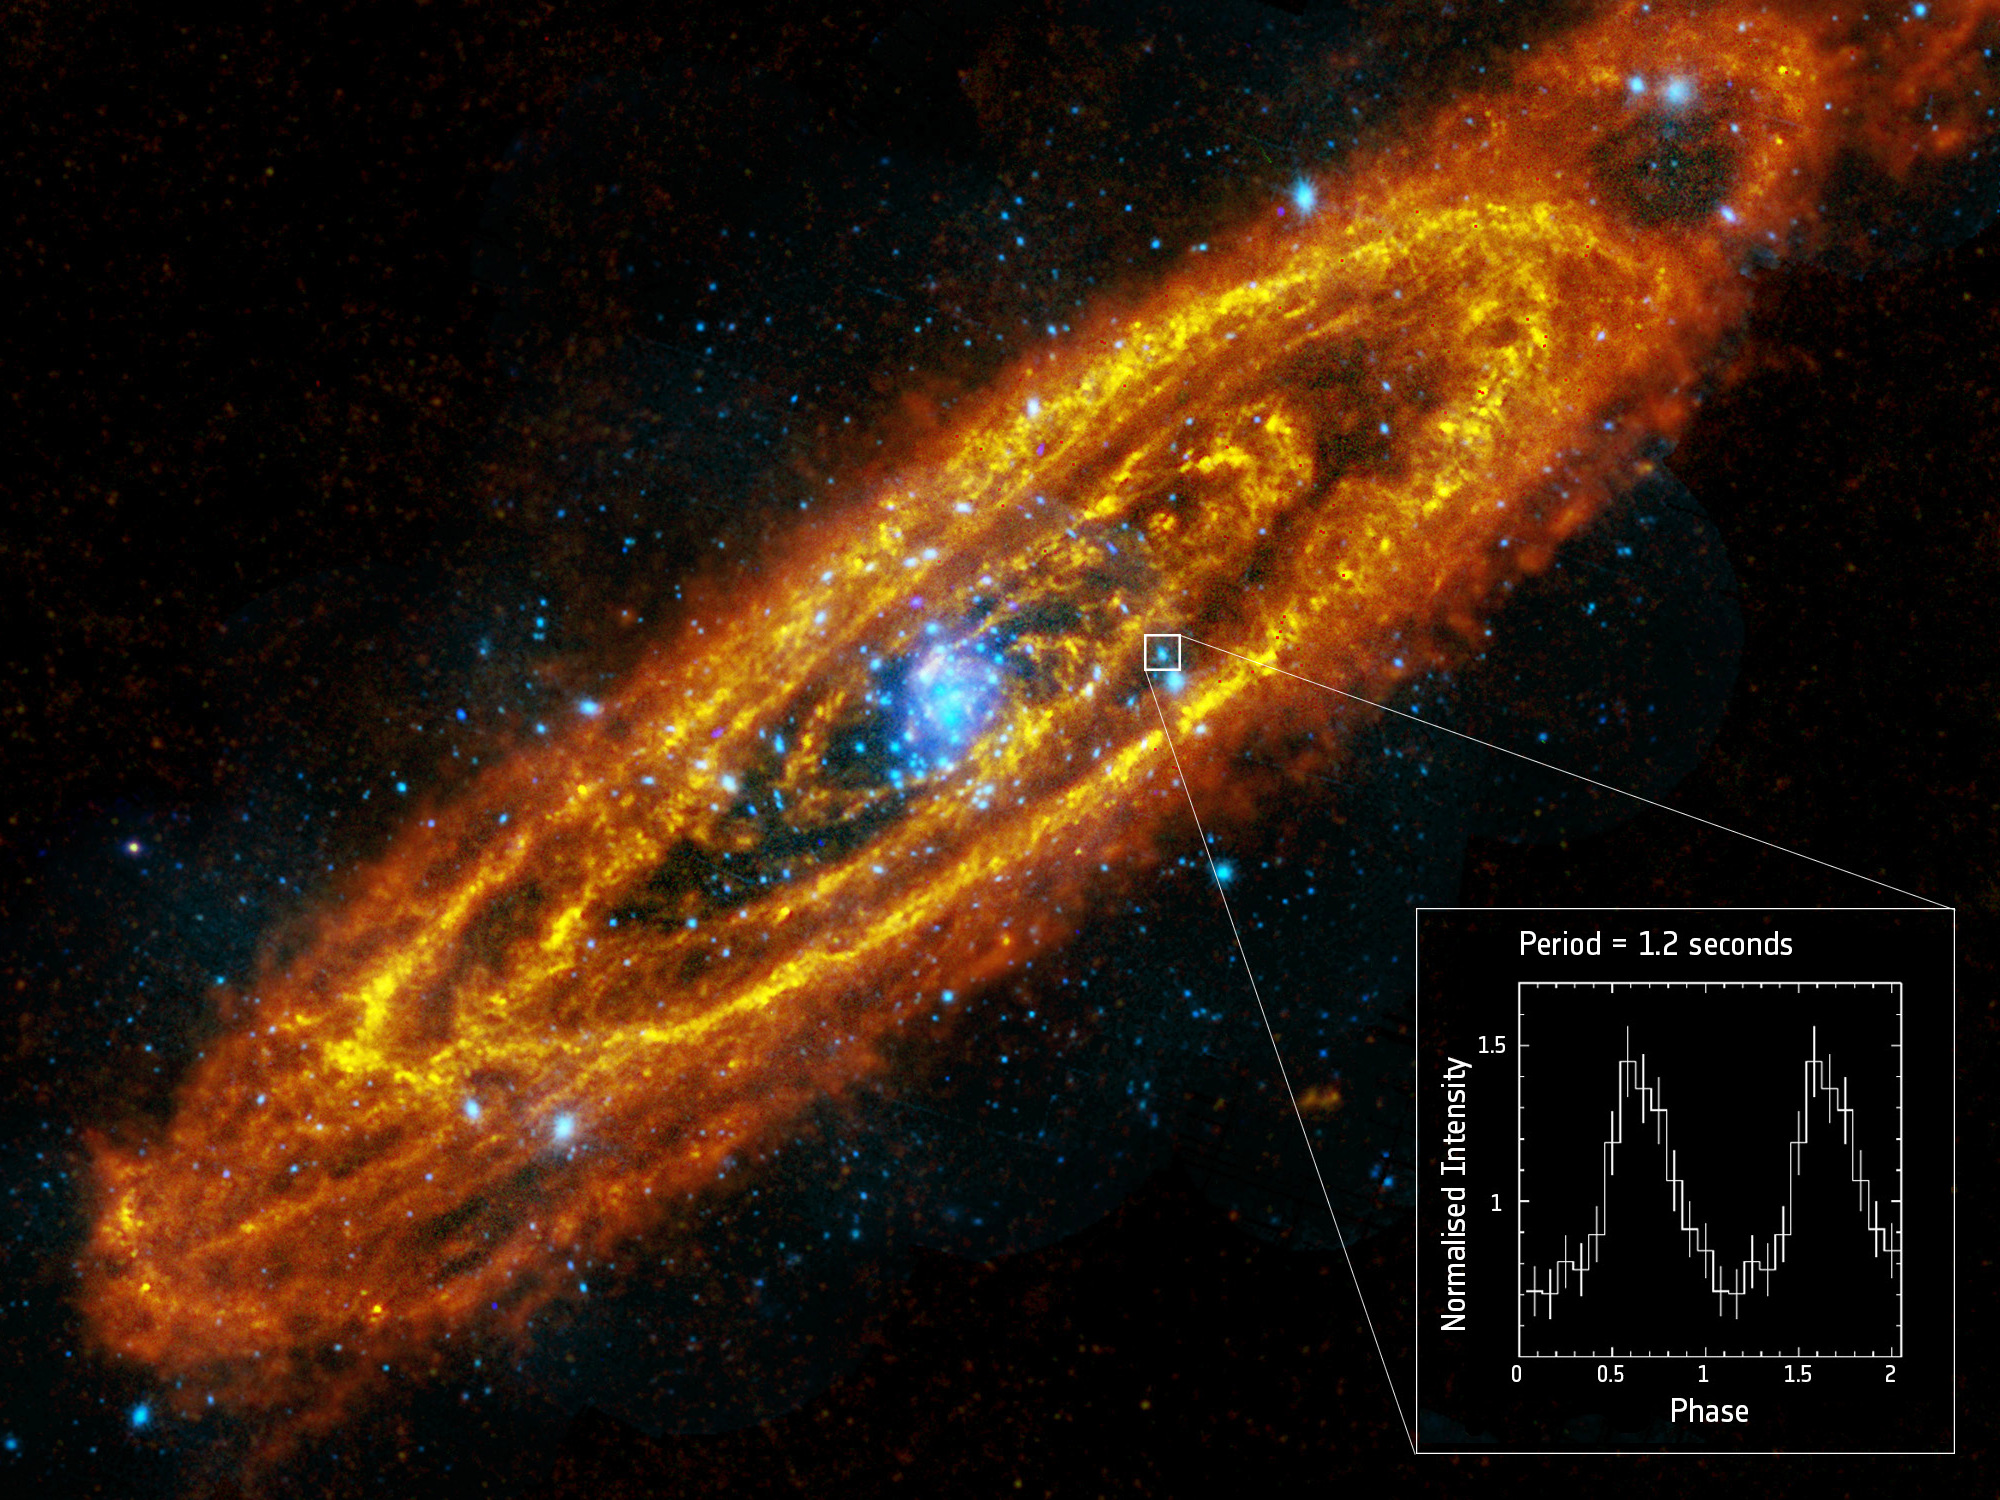 This composite image shows the Andromeda Galaxy (M31) as observed by the two ESA space observatories Herschel (infrared: red and orange) and XMM-Newton (X-ray: blue and white). Inset: Light curve of the source, known as 3XMM J004301.4+413017, as analysed by XMM-Newton's European Photon Imaging Camera, EPIC. The source has a period of 1.2 seconds, consistent with a spinning neutron star. Image credit: © Andromeda: ESA/Herschel/PACS/SPIRE/J. Fritz, U. Gent/XMM-Newton/EPIC/W. Pietsch, MPE; data: P. Esposito et al. (2016).